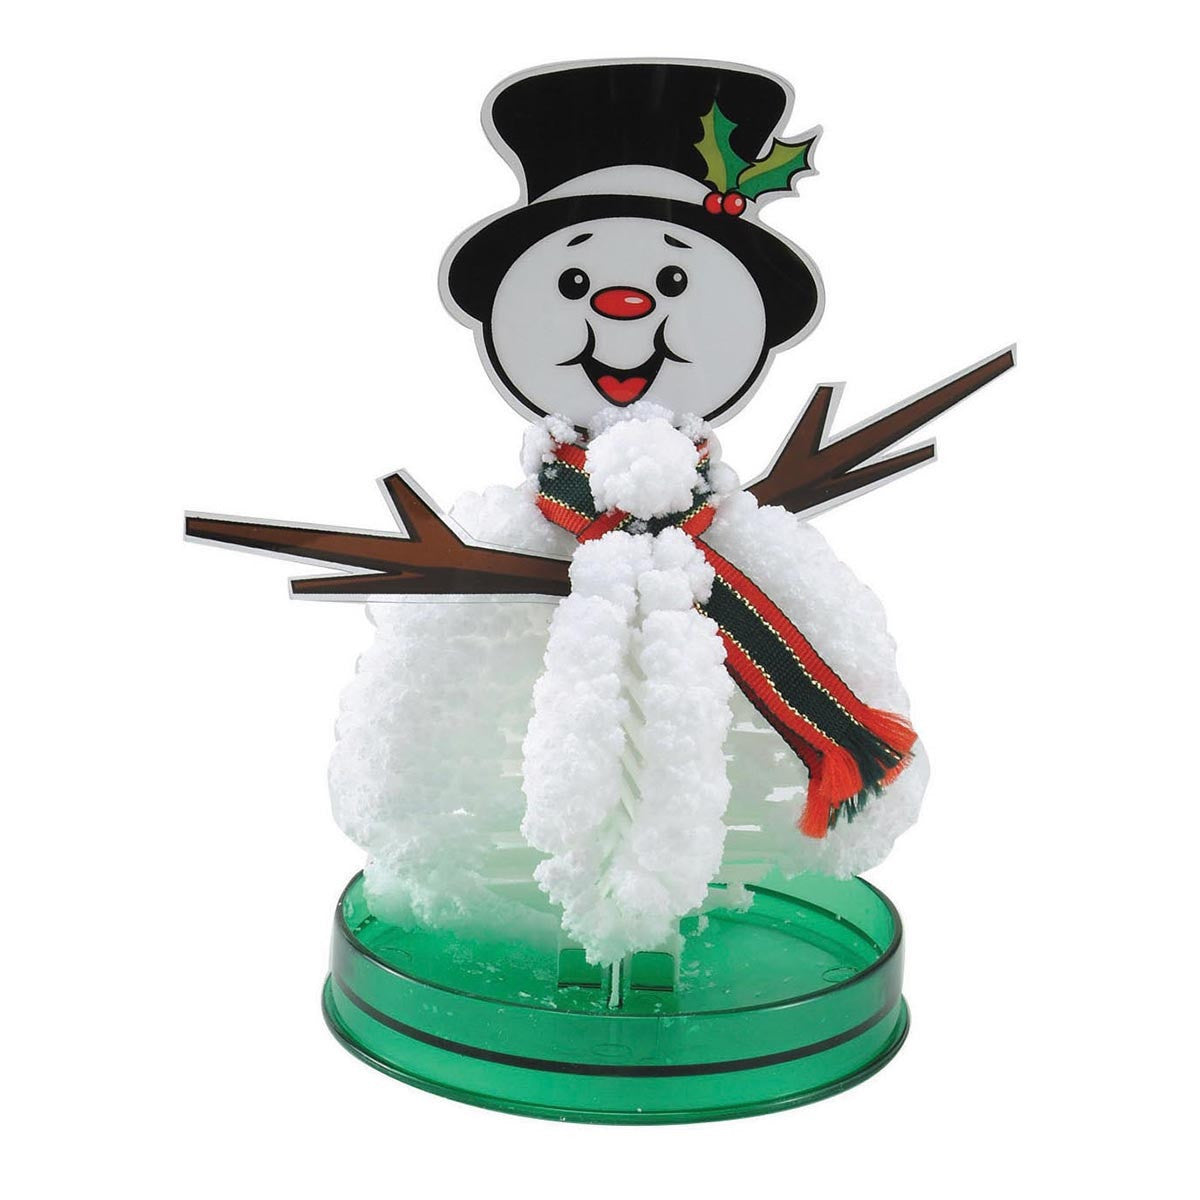 Amazing Crystal Growing Kit - Magic Grower Snowman - Off The Wall Toys and Gifts